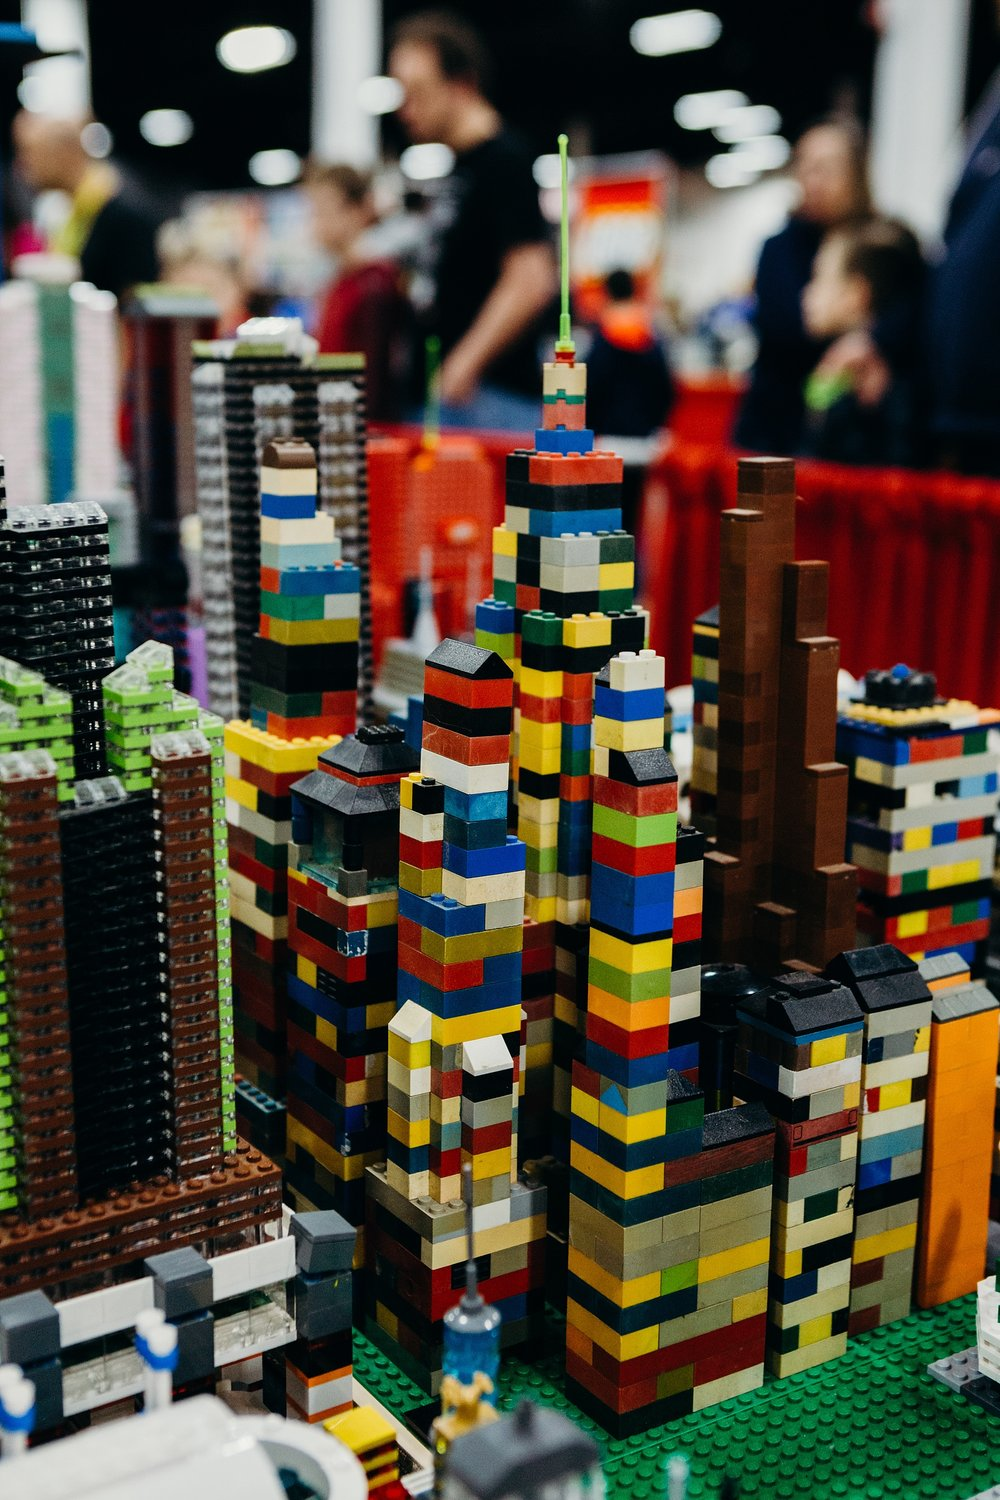 Joe_mac_Creative_Photography_Lego_Convention_Expo_Philadelphia__0020.jpg